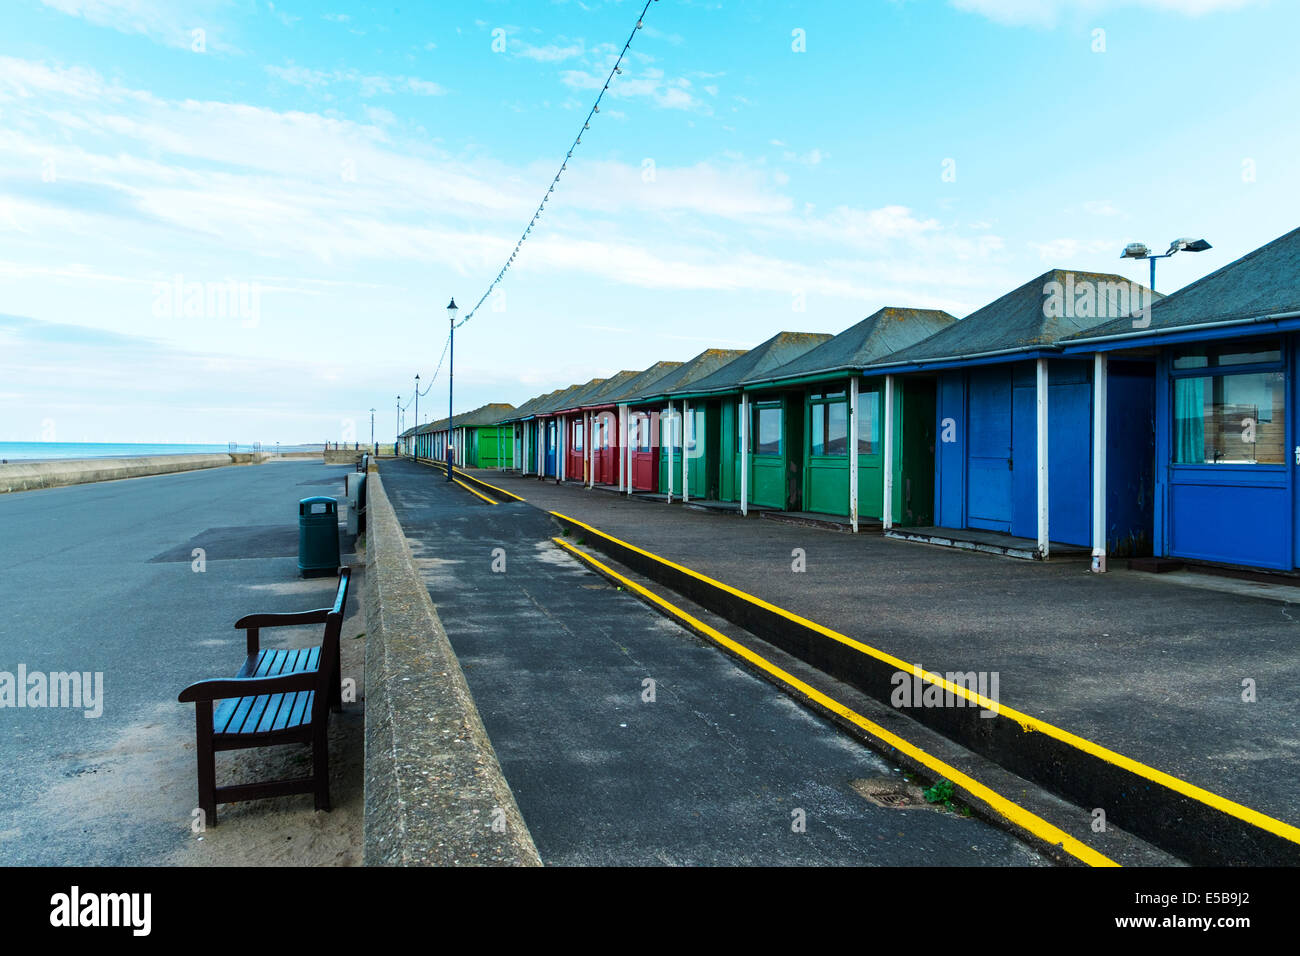 Sutton On Sea Chalets beach changing rooms wooden shacks buildings Lincolnshire UK England Beach, Huts, Coast, Sandilands, - Stock Image